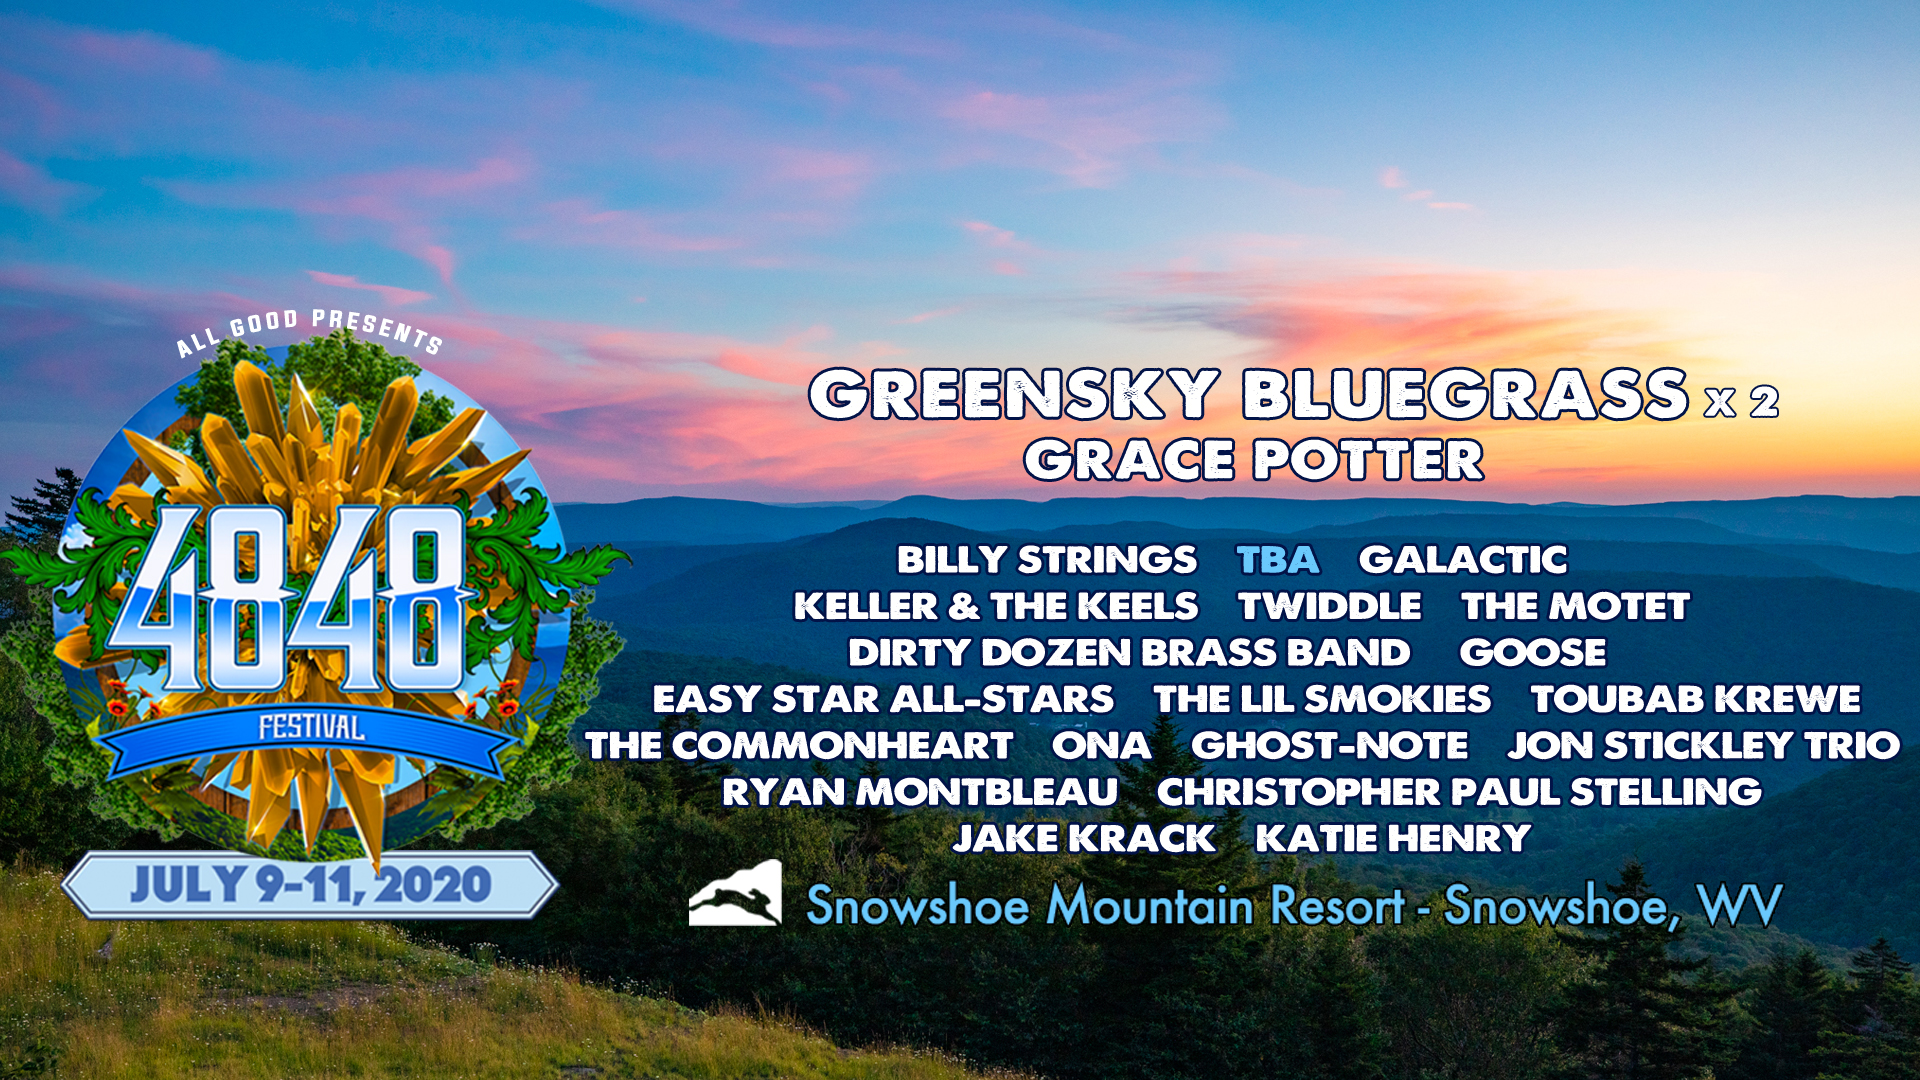 All Good Presents the 2nd Annual 4848 Festival at Snowshoe Mountain Resort, Snowshoe, WV July 9 - 11